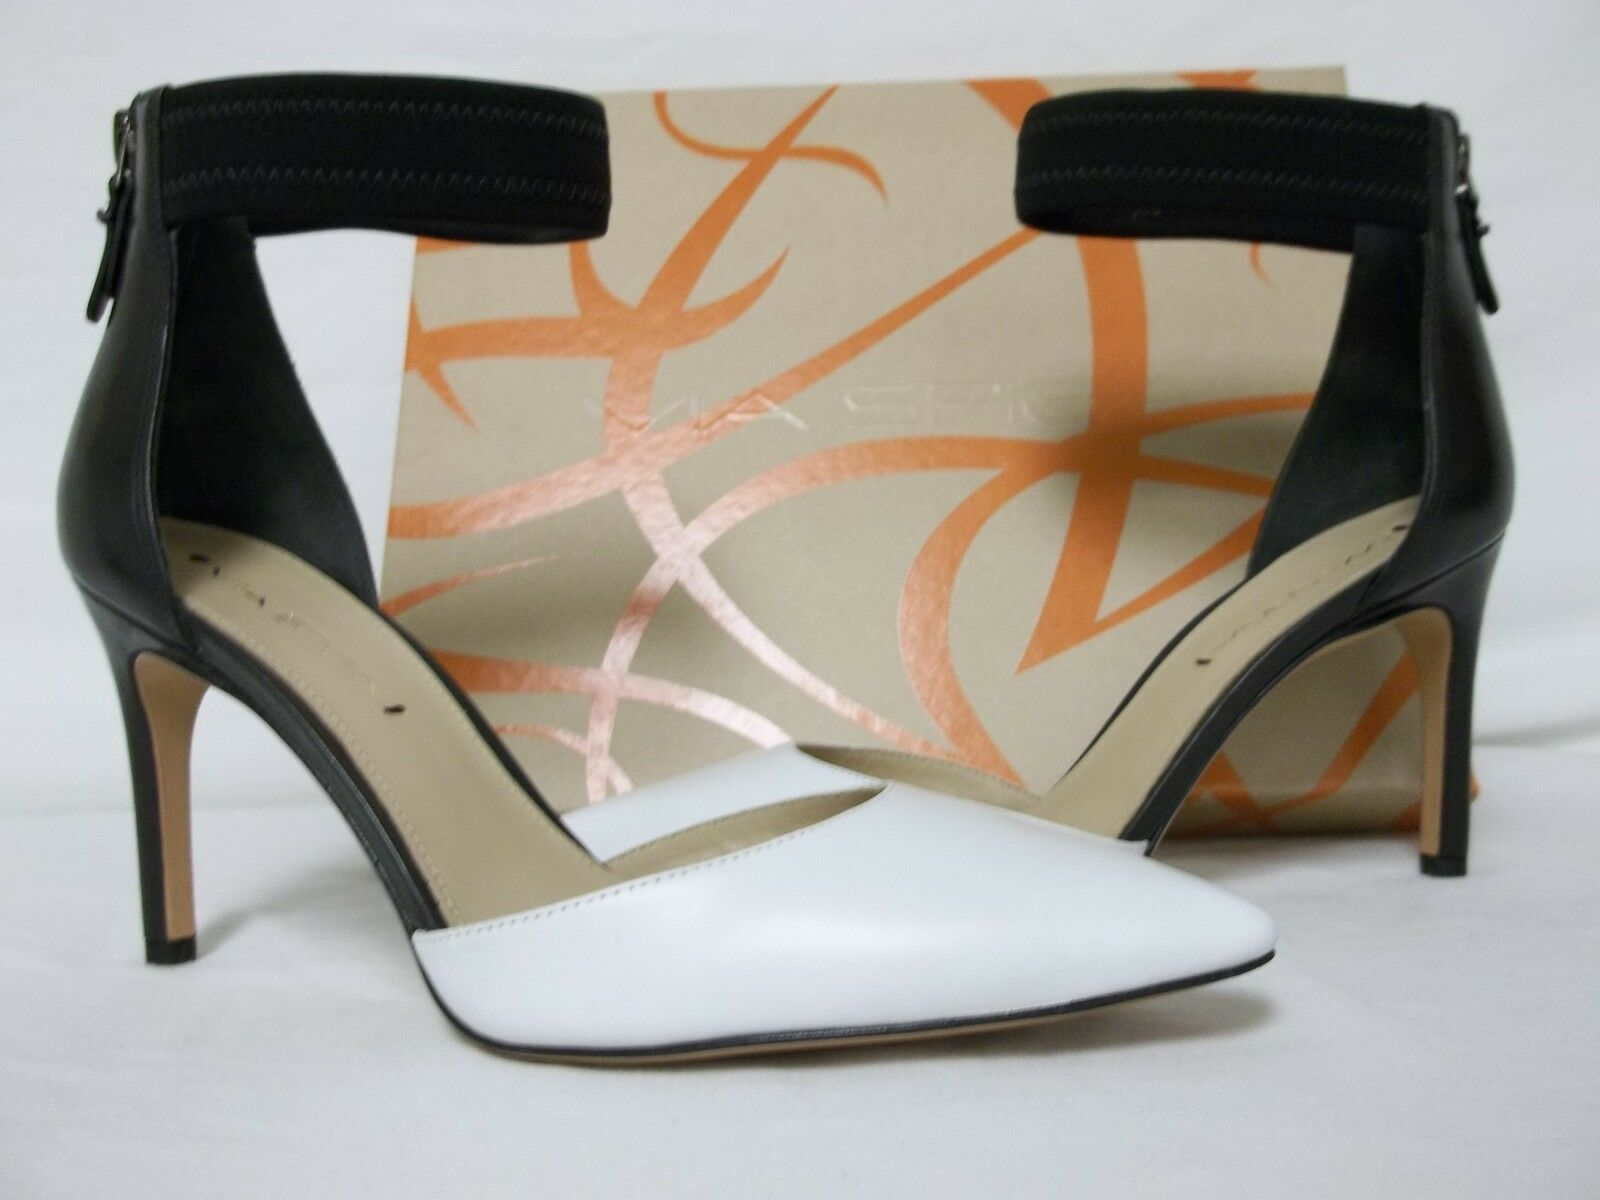 Via Spiga Size 8 M Ife Black White Leather Ankle Strap Heels New Womens Shoes